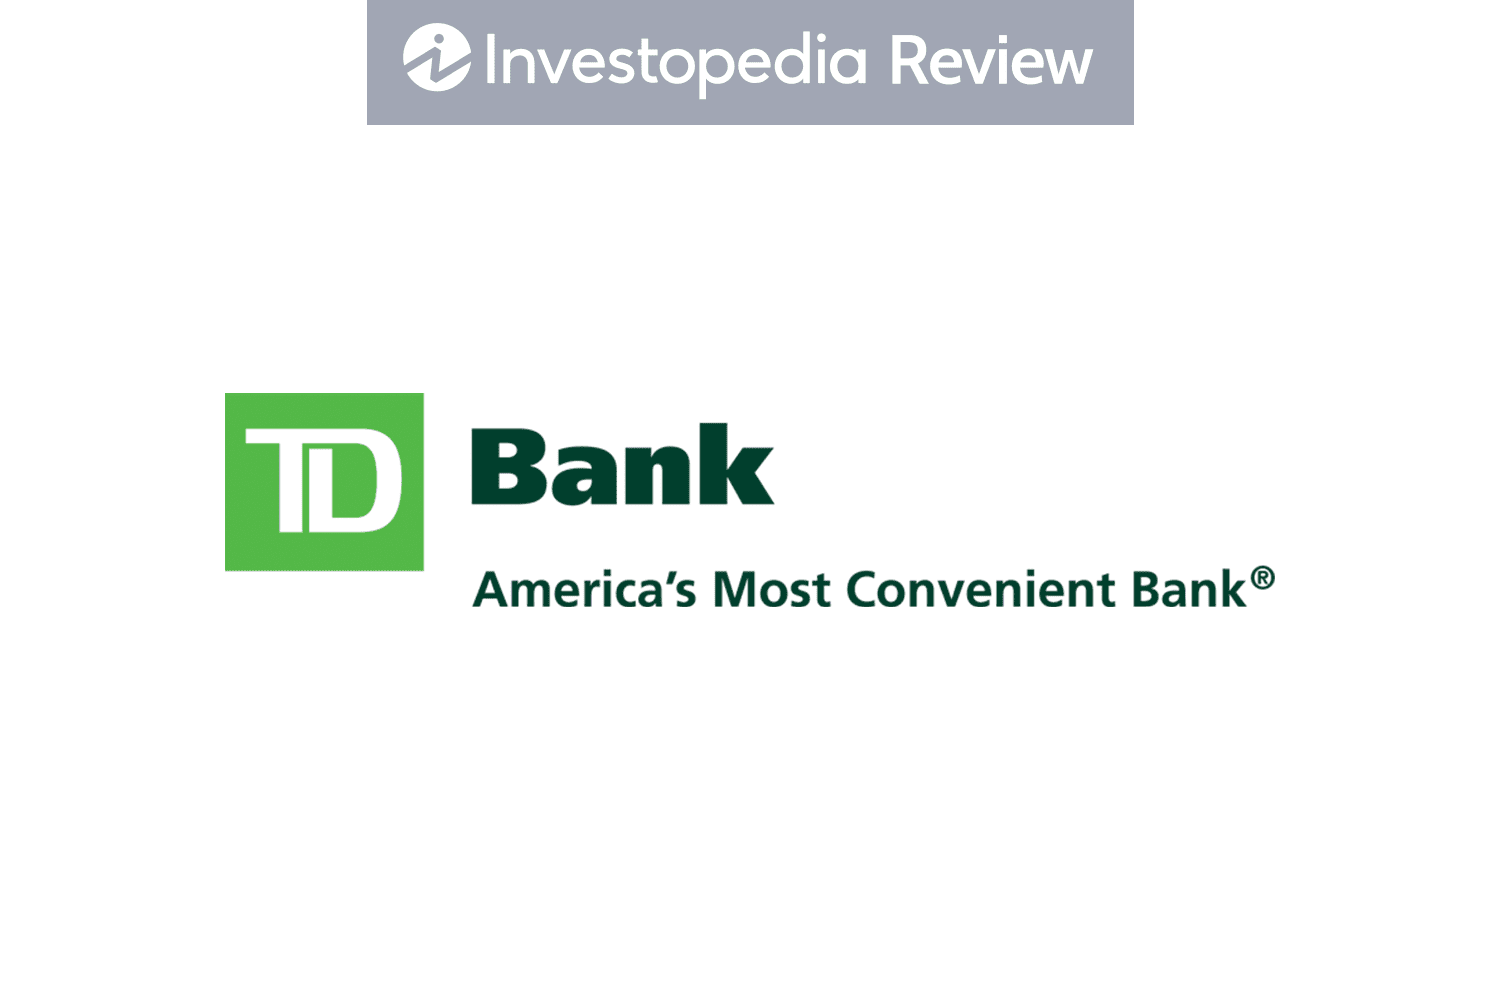 TD Bank Personal Loans Review 2020